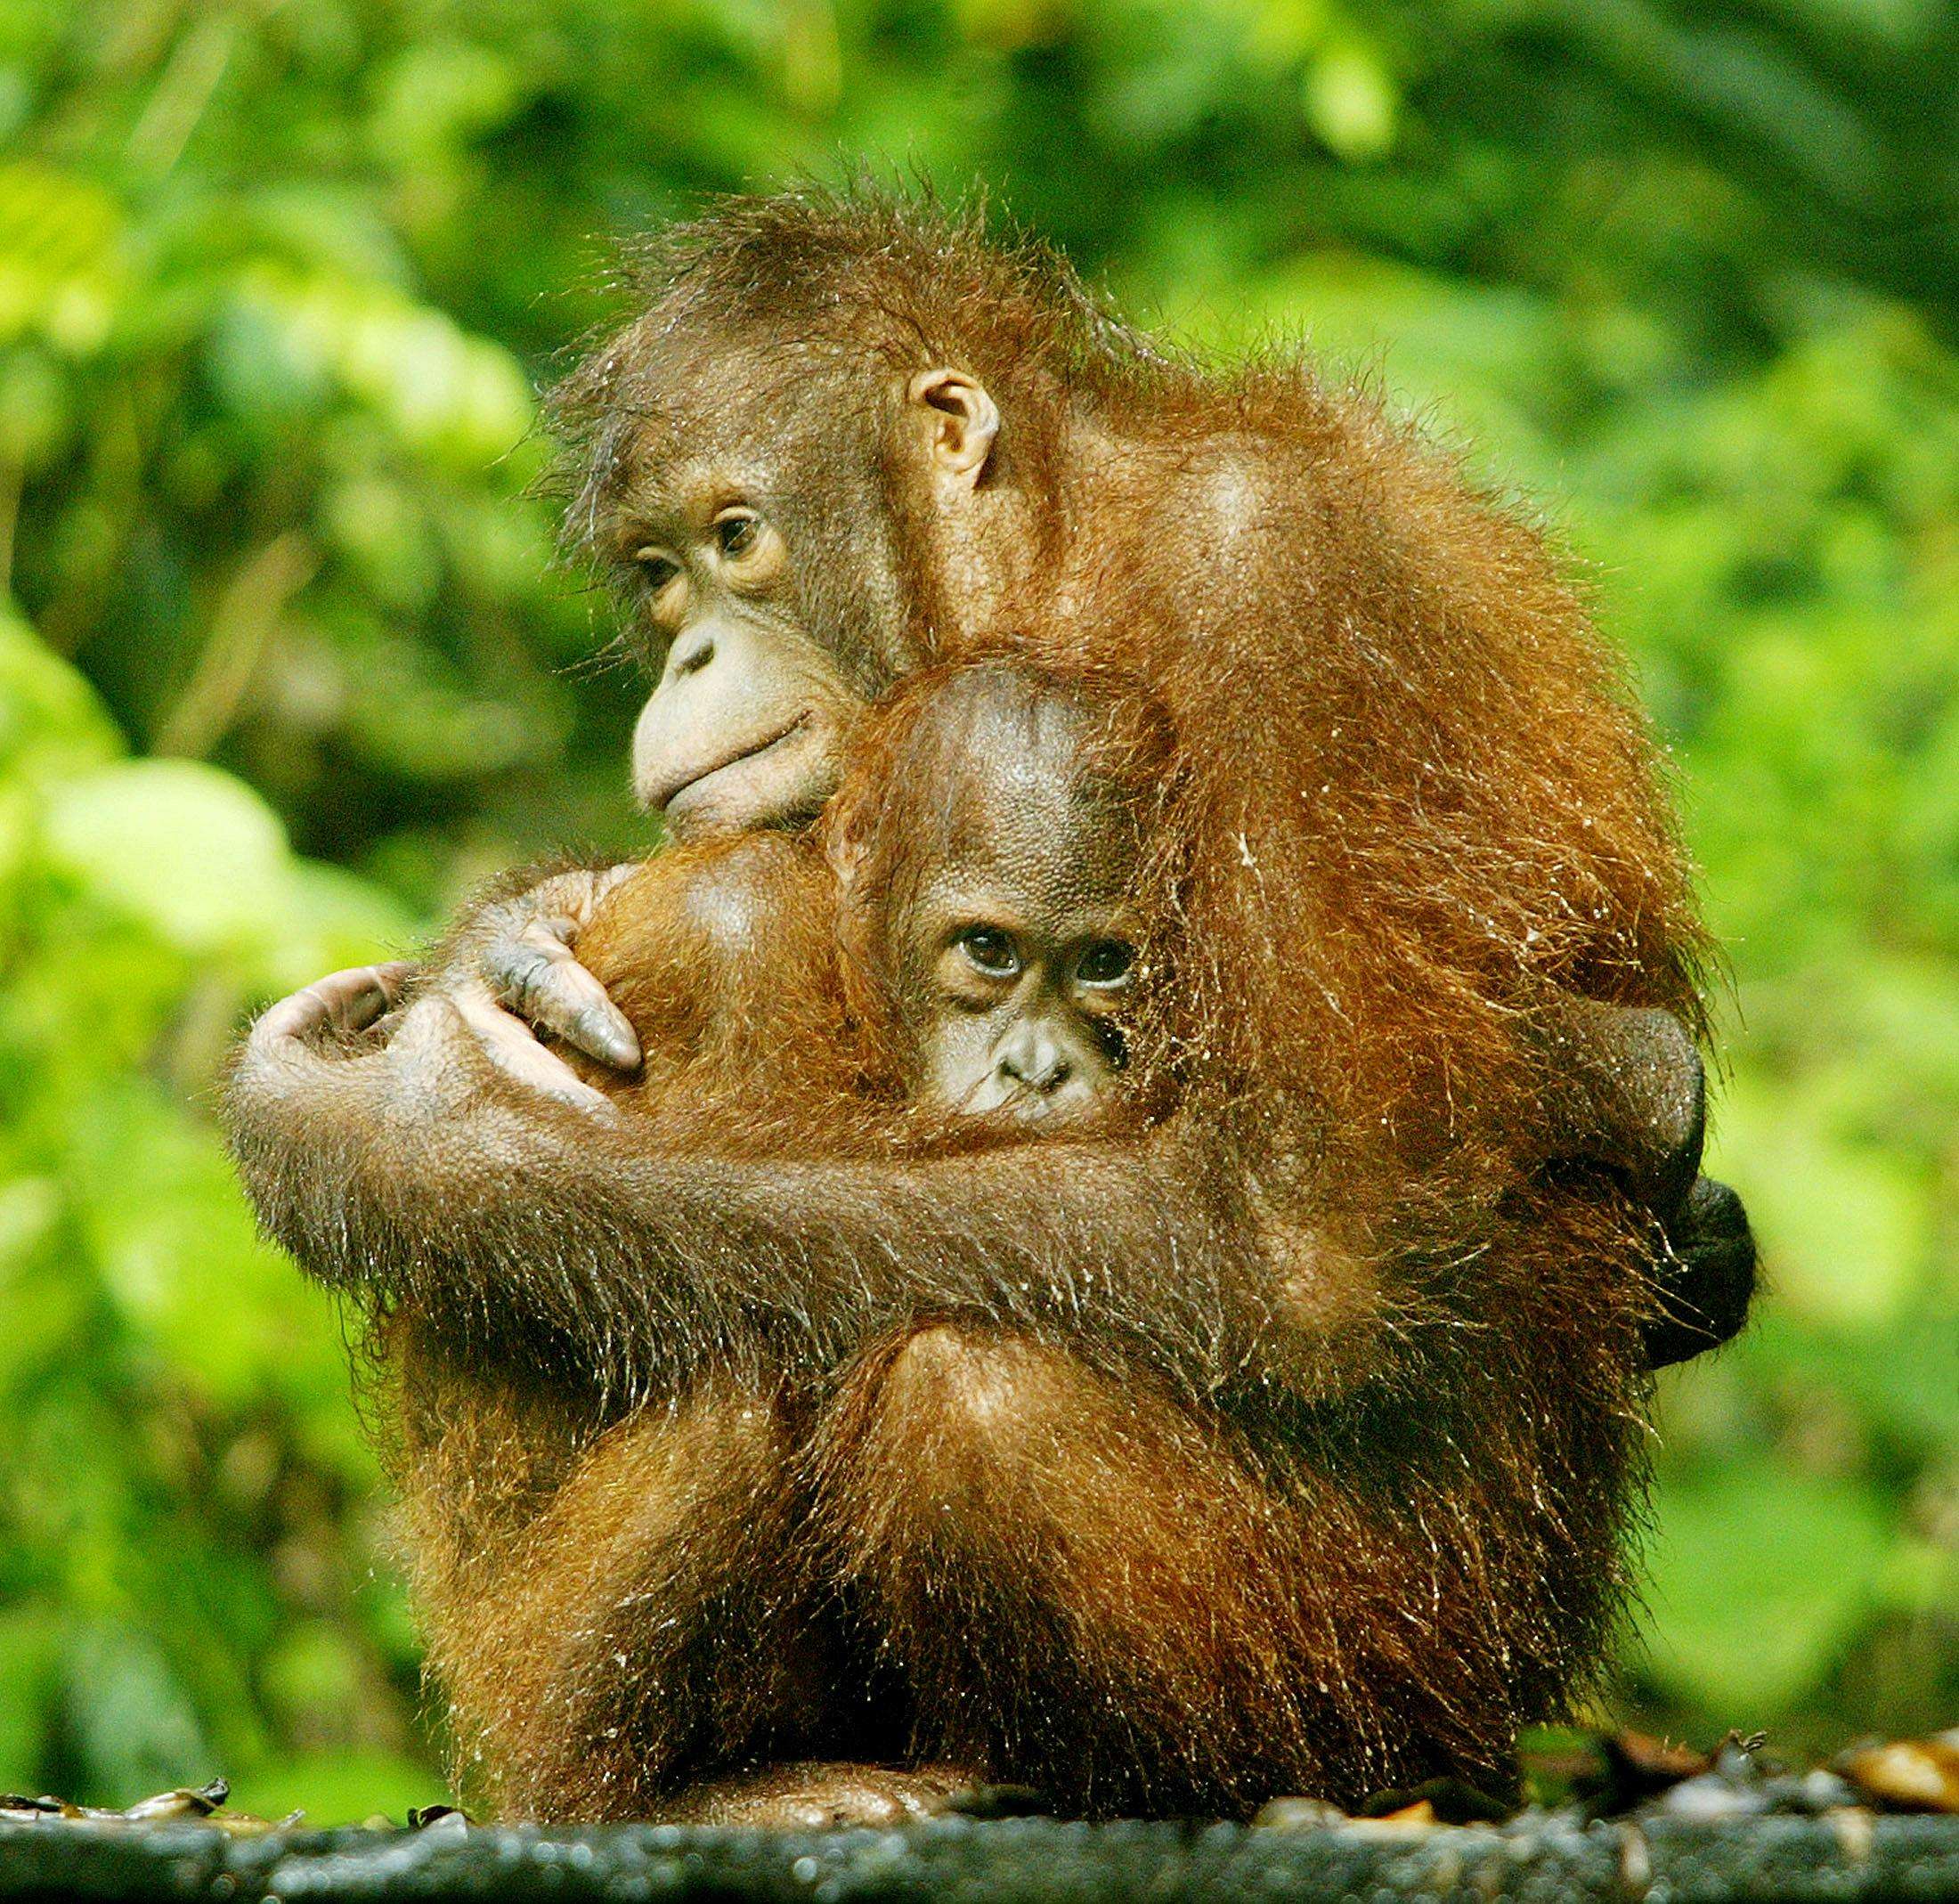 An orangutan hold its baby at the Sepilok Orangutan Rehabilitation Center in the Malaysian state of Sabah on Borneo island on January 11, 2004.   Bazuki Muhammad